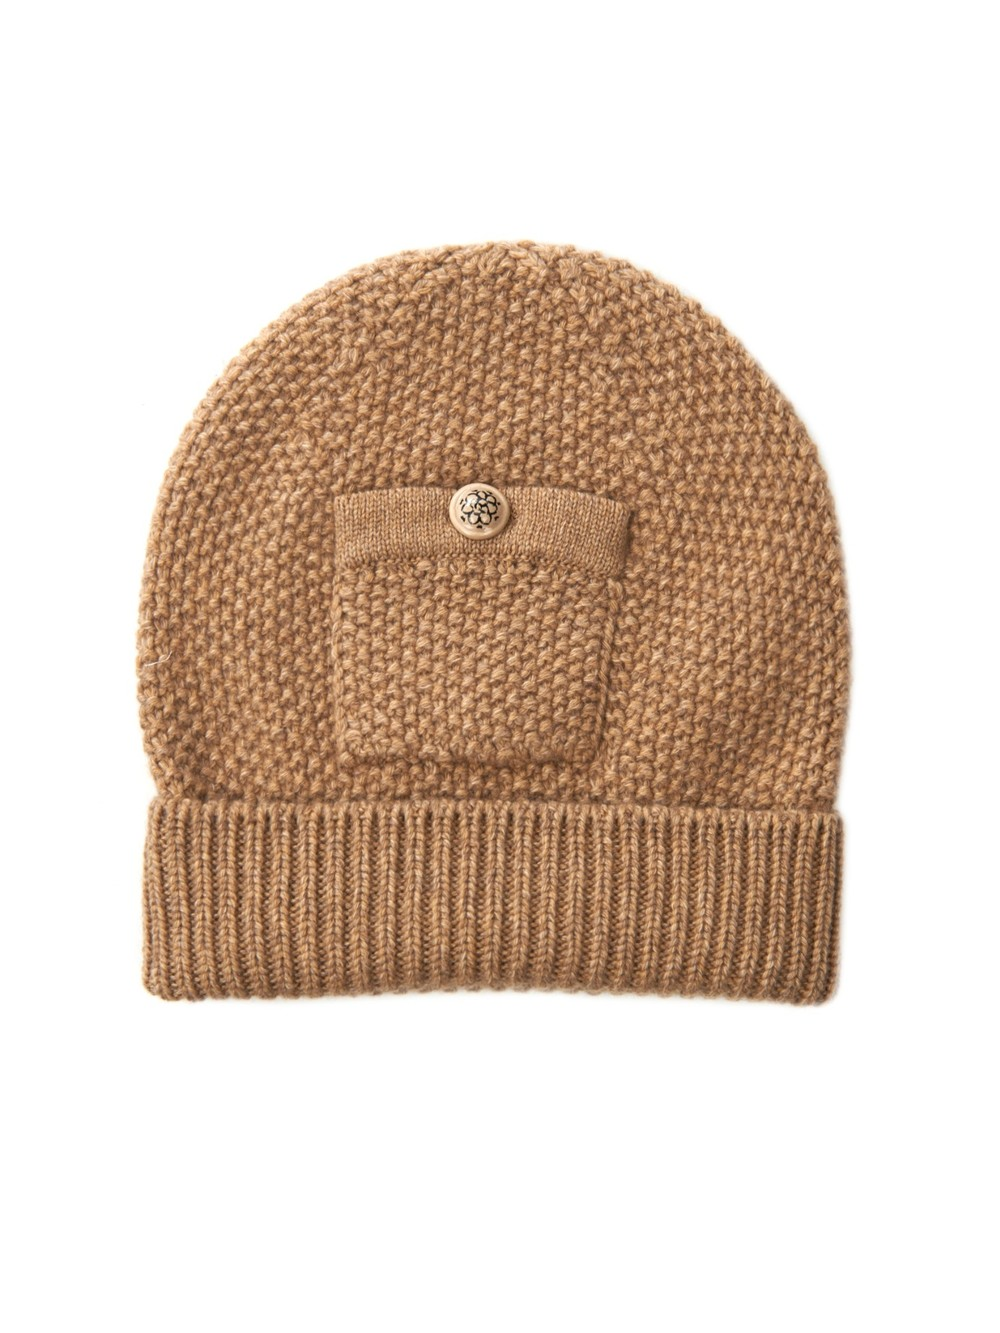 Barrie Palette cashmere beanie hat, £85, Matches Fashion